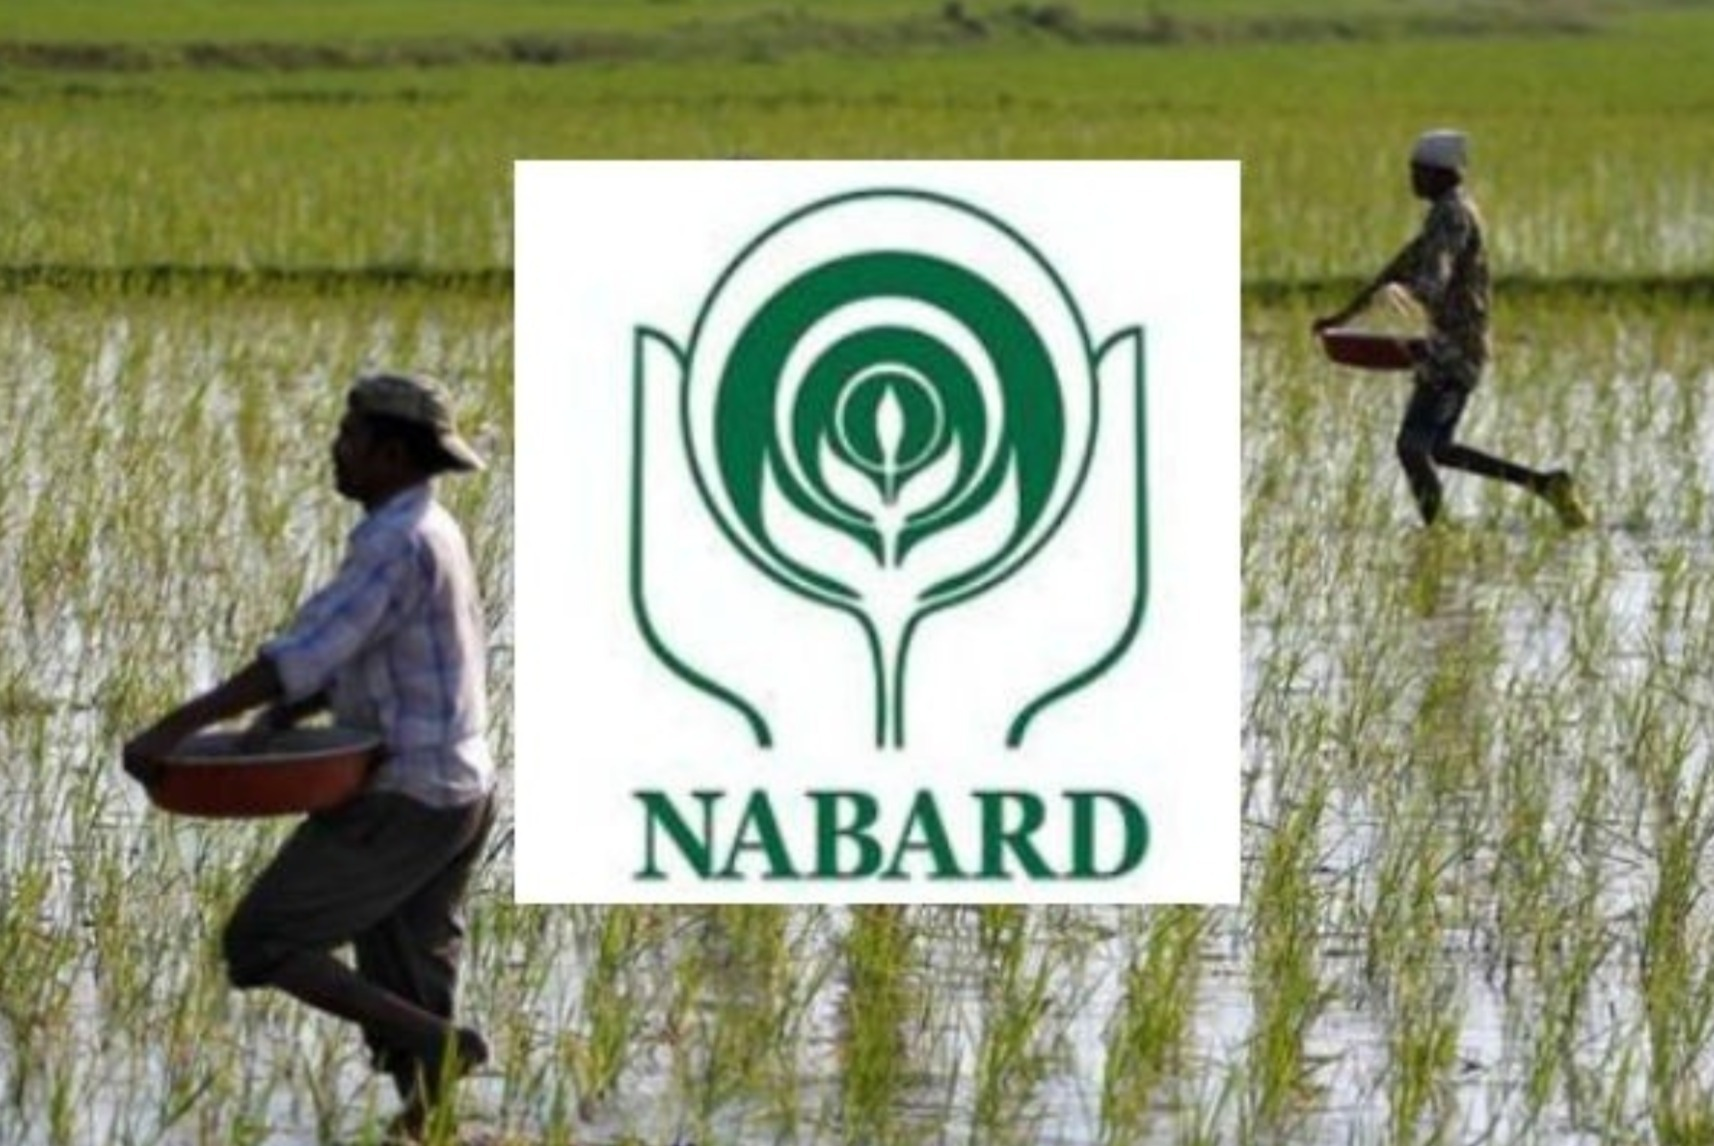 NABARD Sanctions Rs 334.75 crore to Bengal Projects